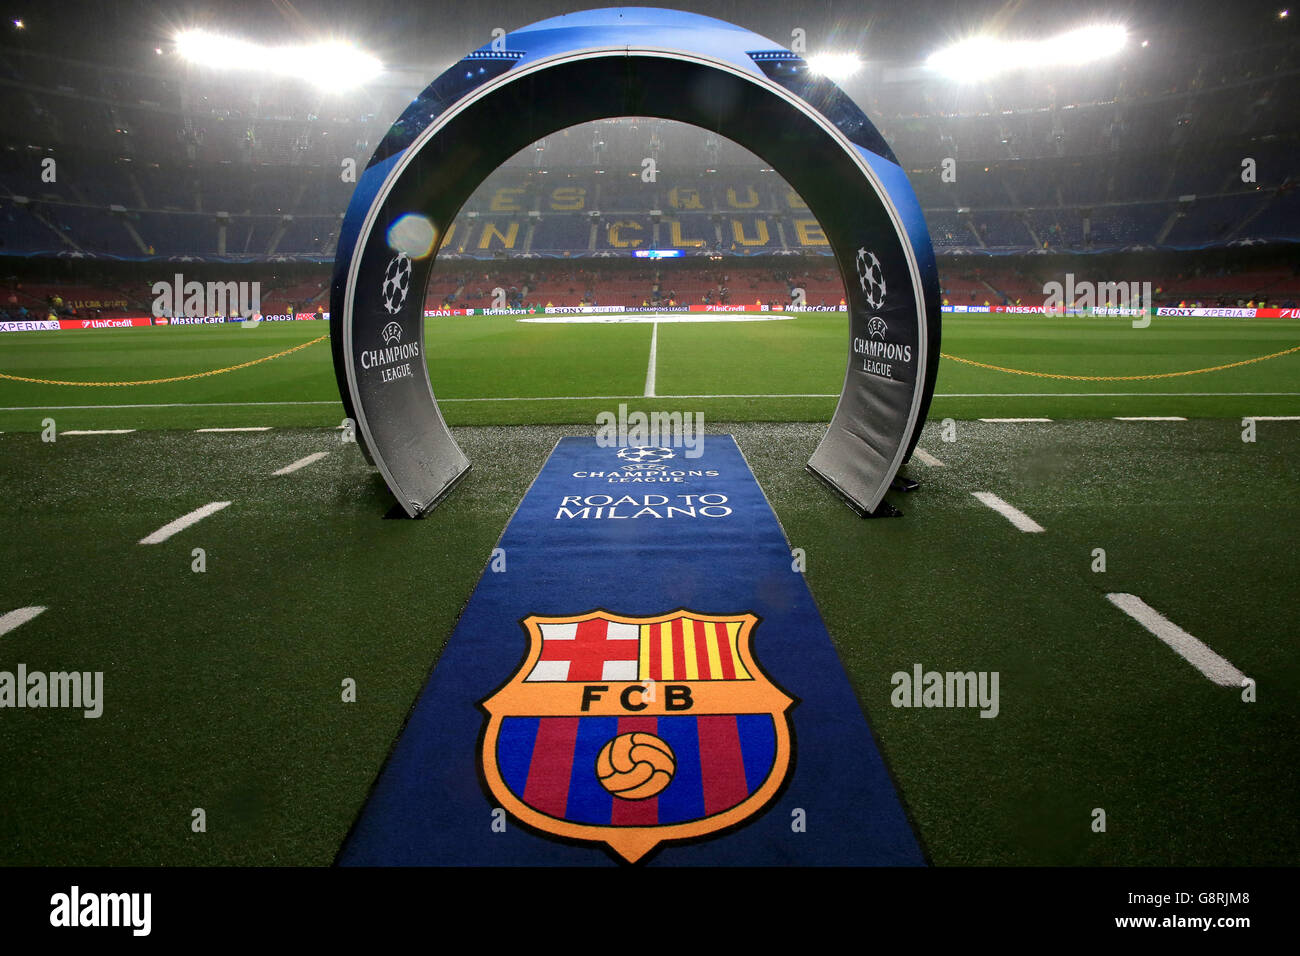 Barcelona v Arsenal - UEFA Champions League - Round of Sixteen - Second Leg - Camp Nou - Stock Image